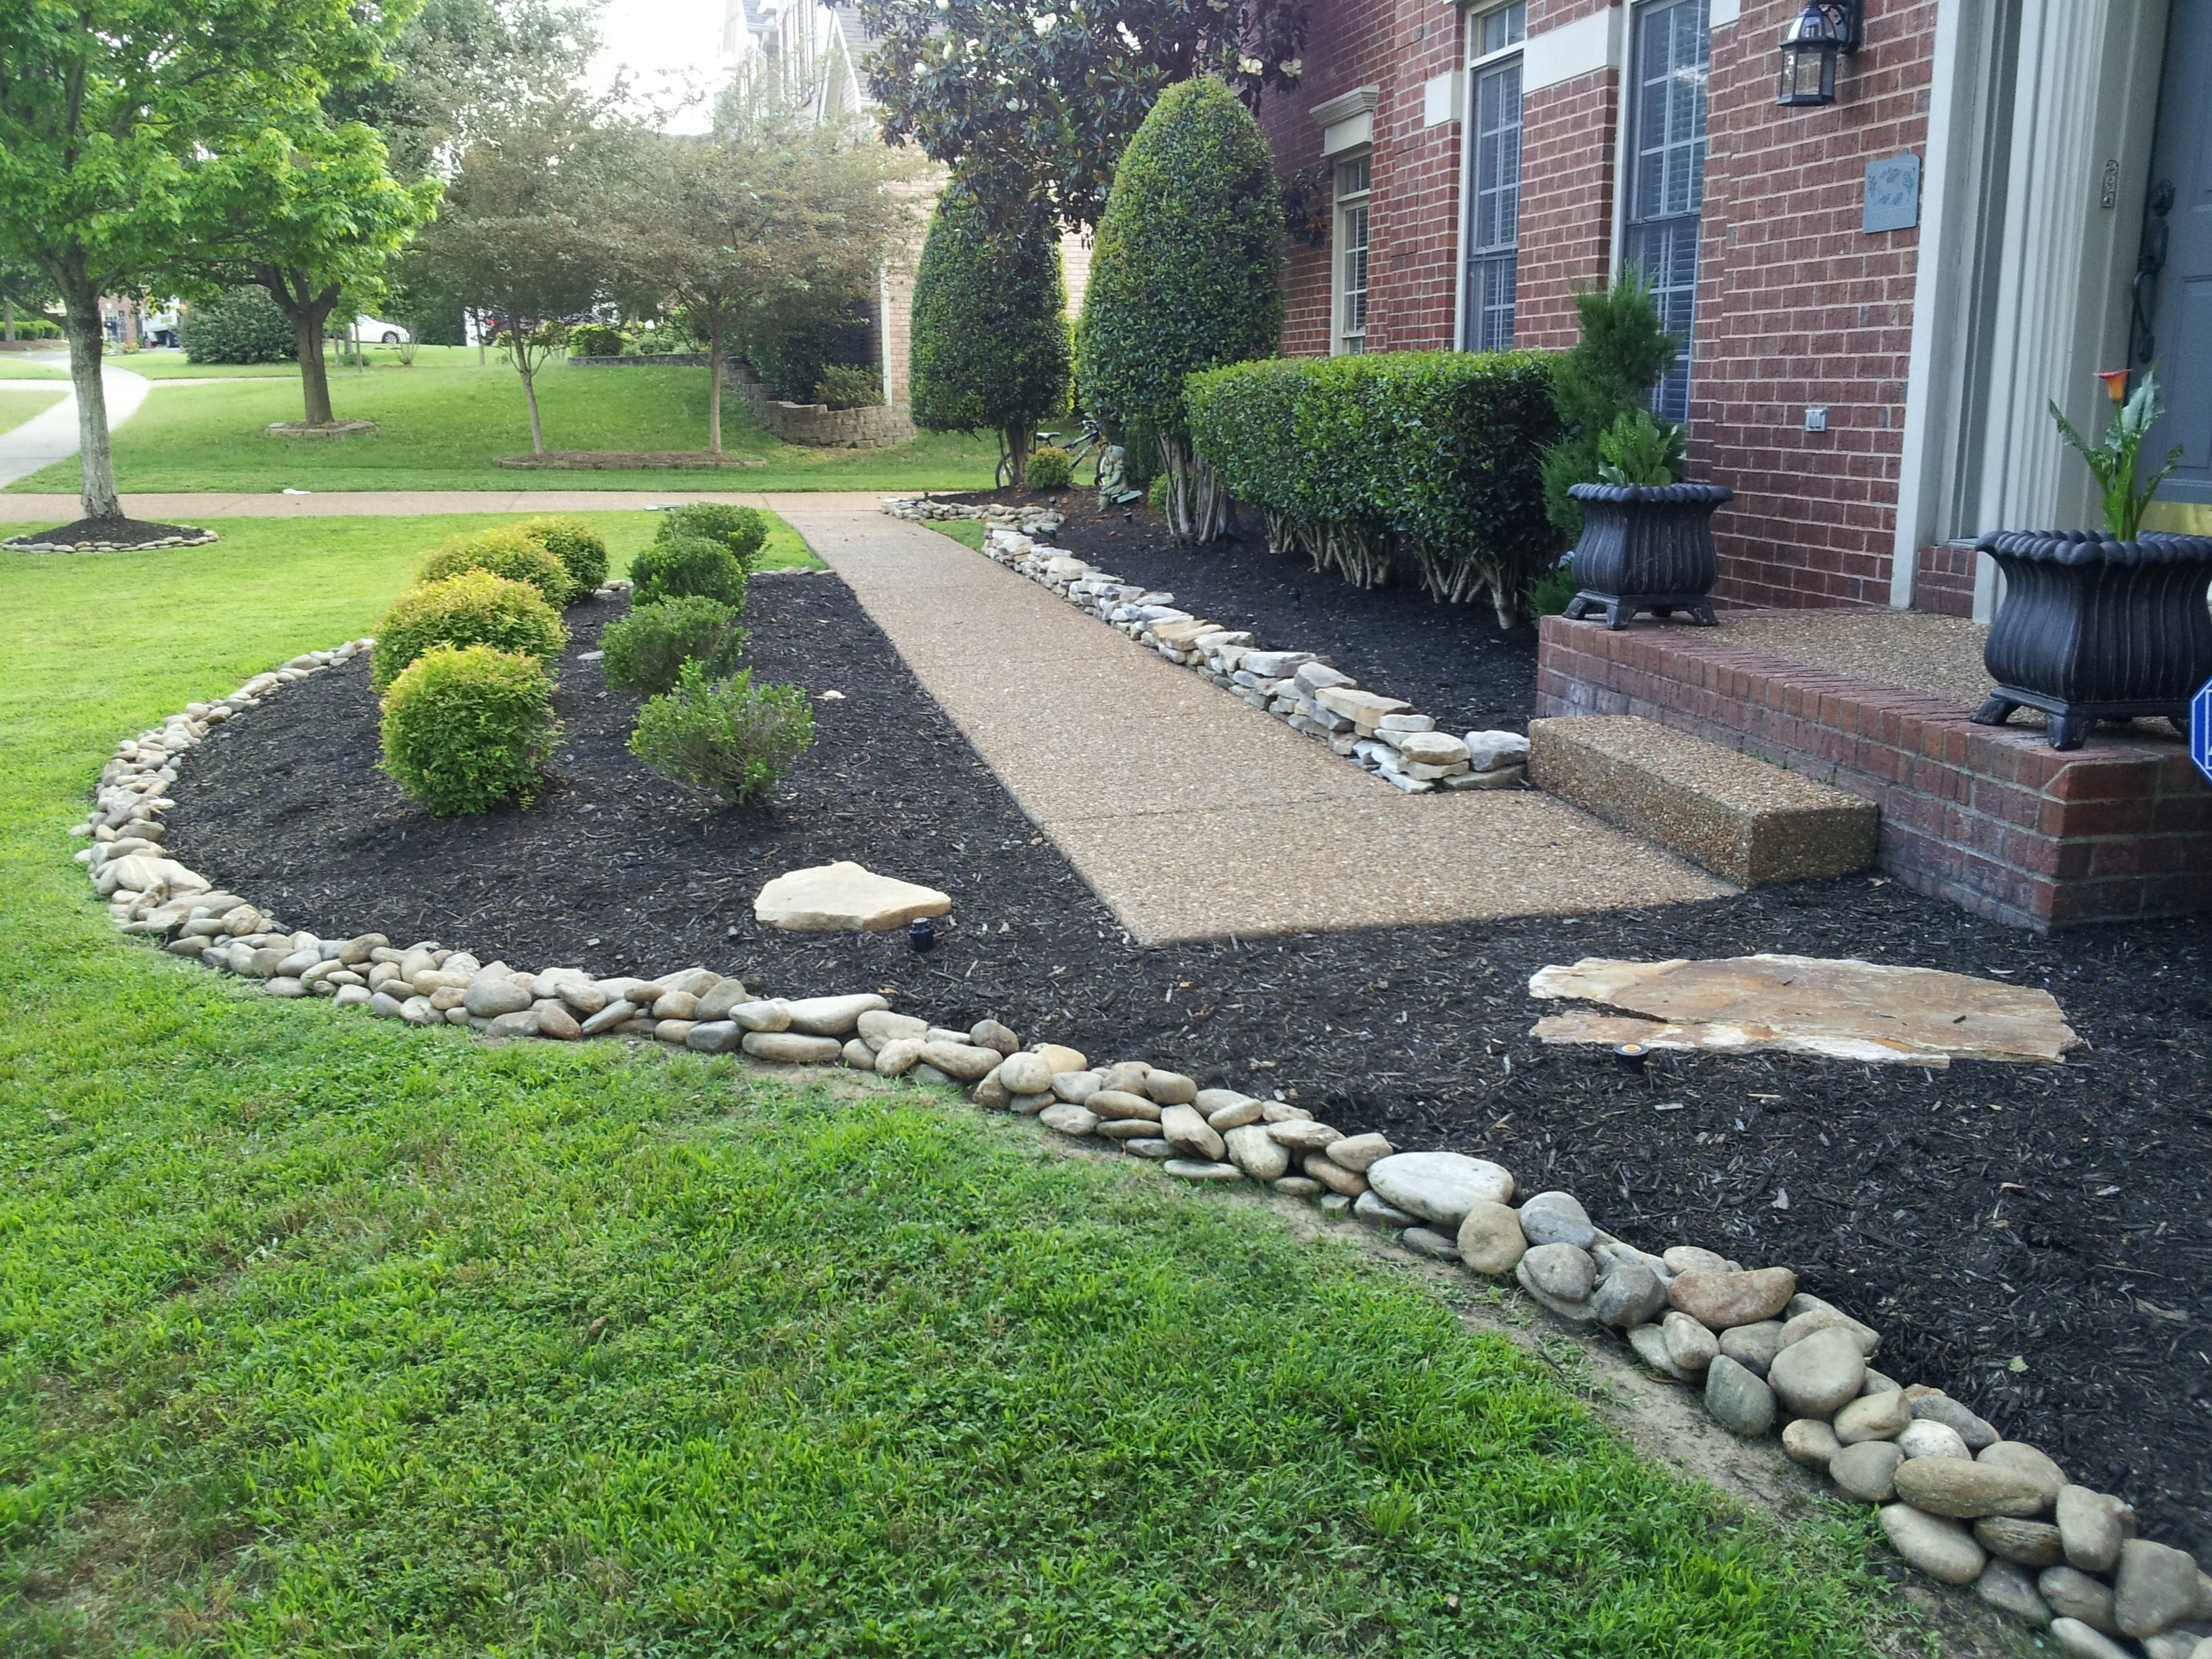 Landscaping With Stones And Rocks Instead Of Mulch Archives - Lets rock 20 fabulous rock garden design ideas